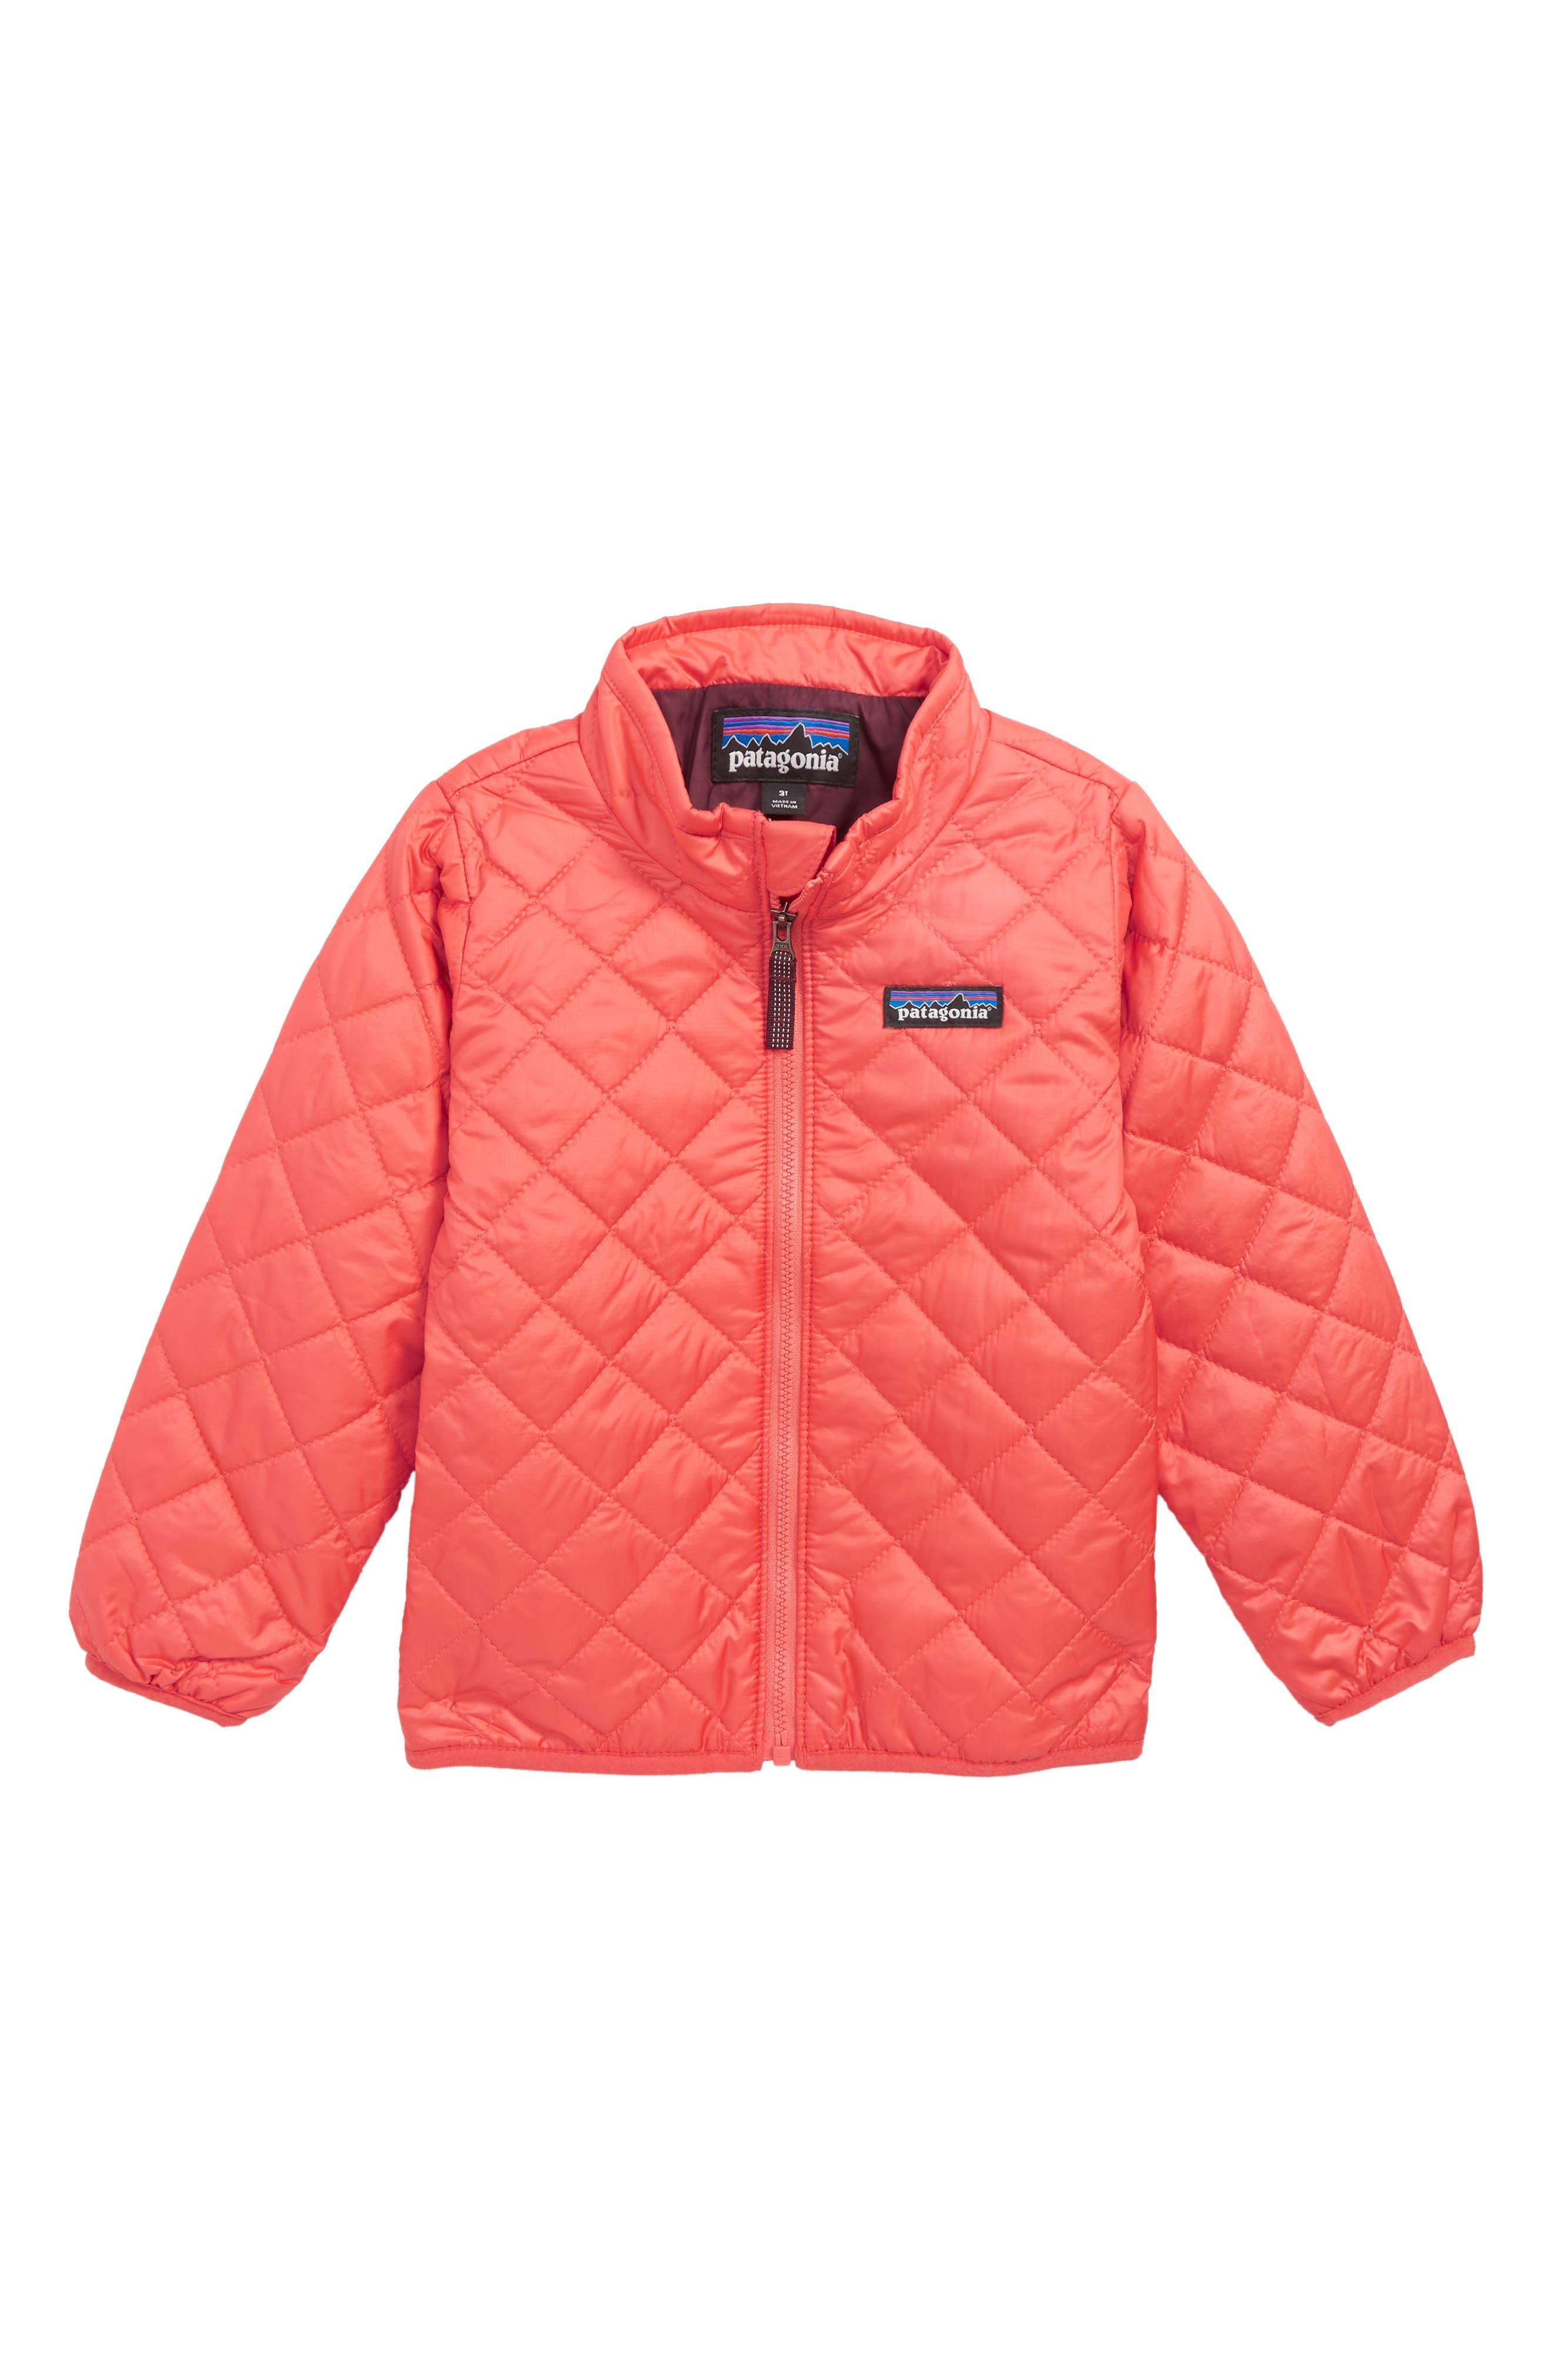 Nano Puff<sup>®</sup> Quilted Water Resistant Jacket,                         Main,                         color, SPICED CORAL